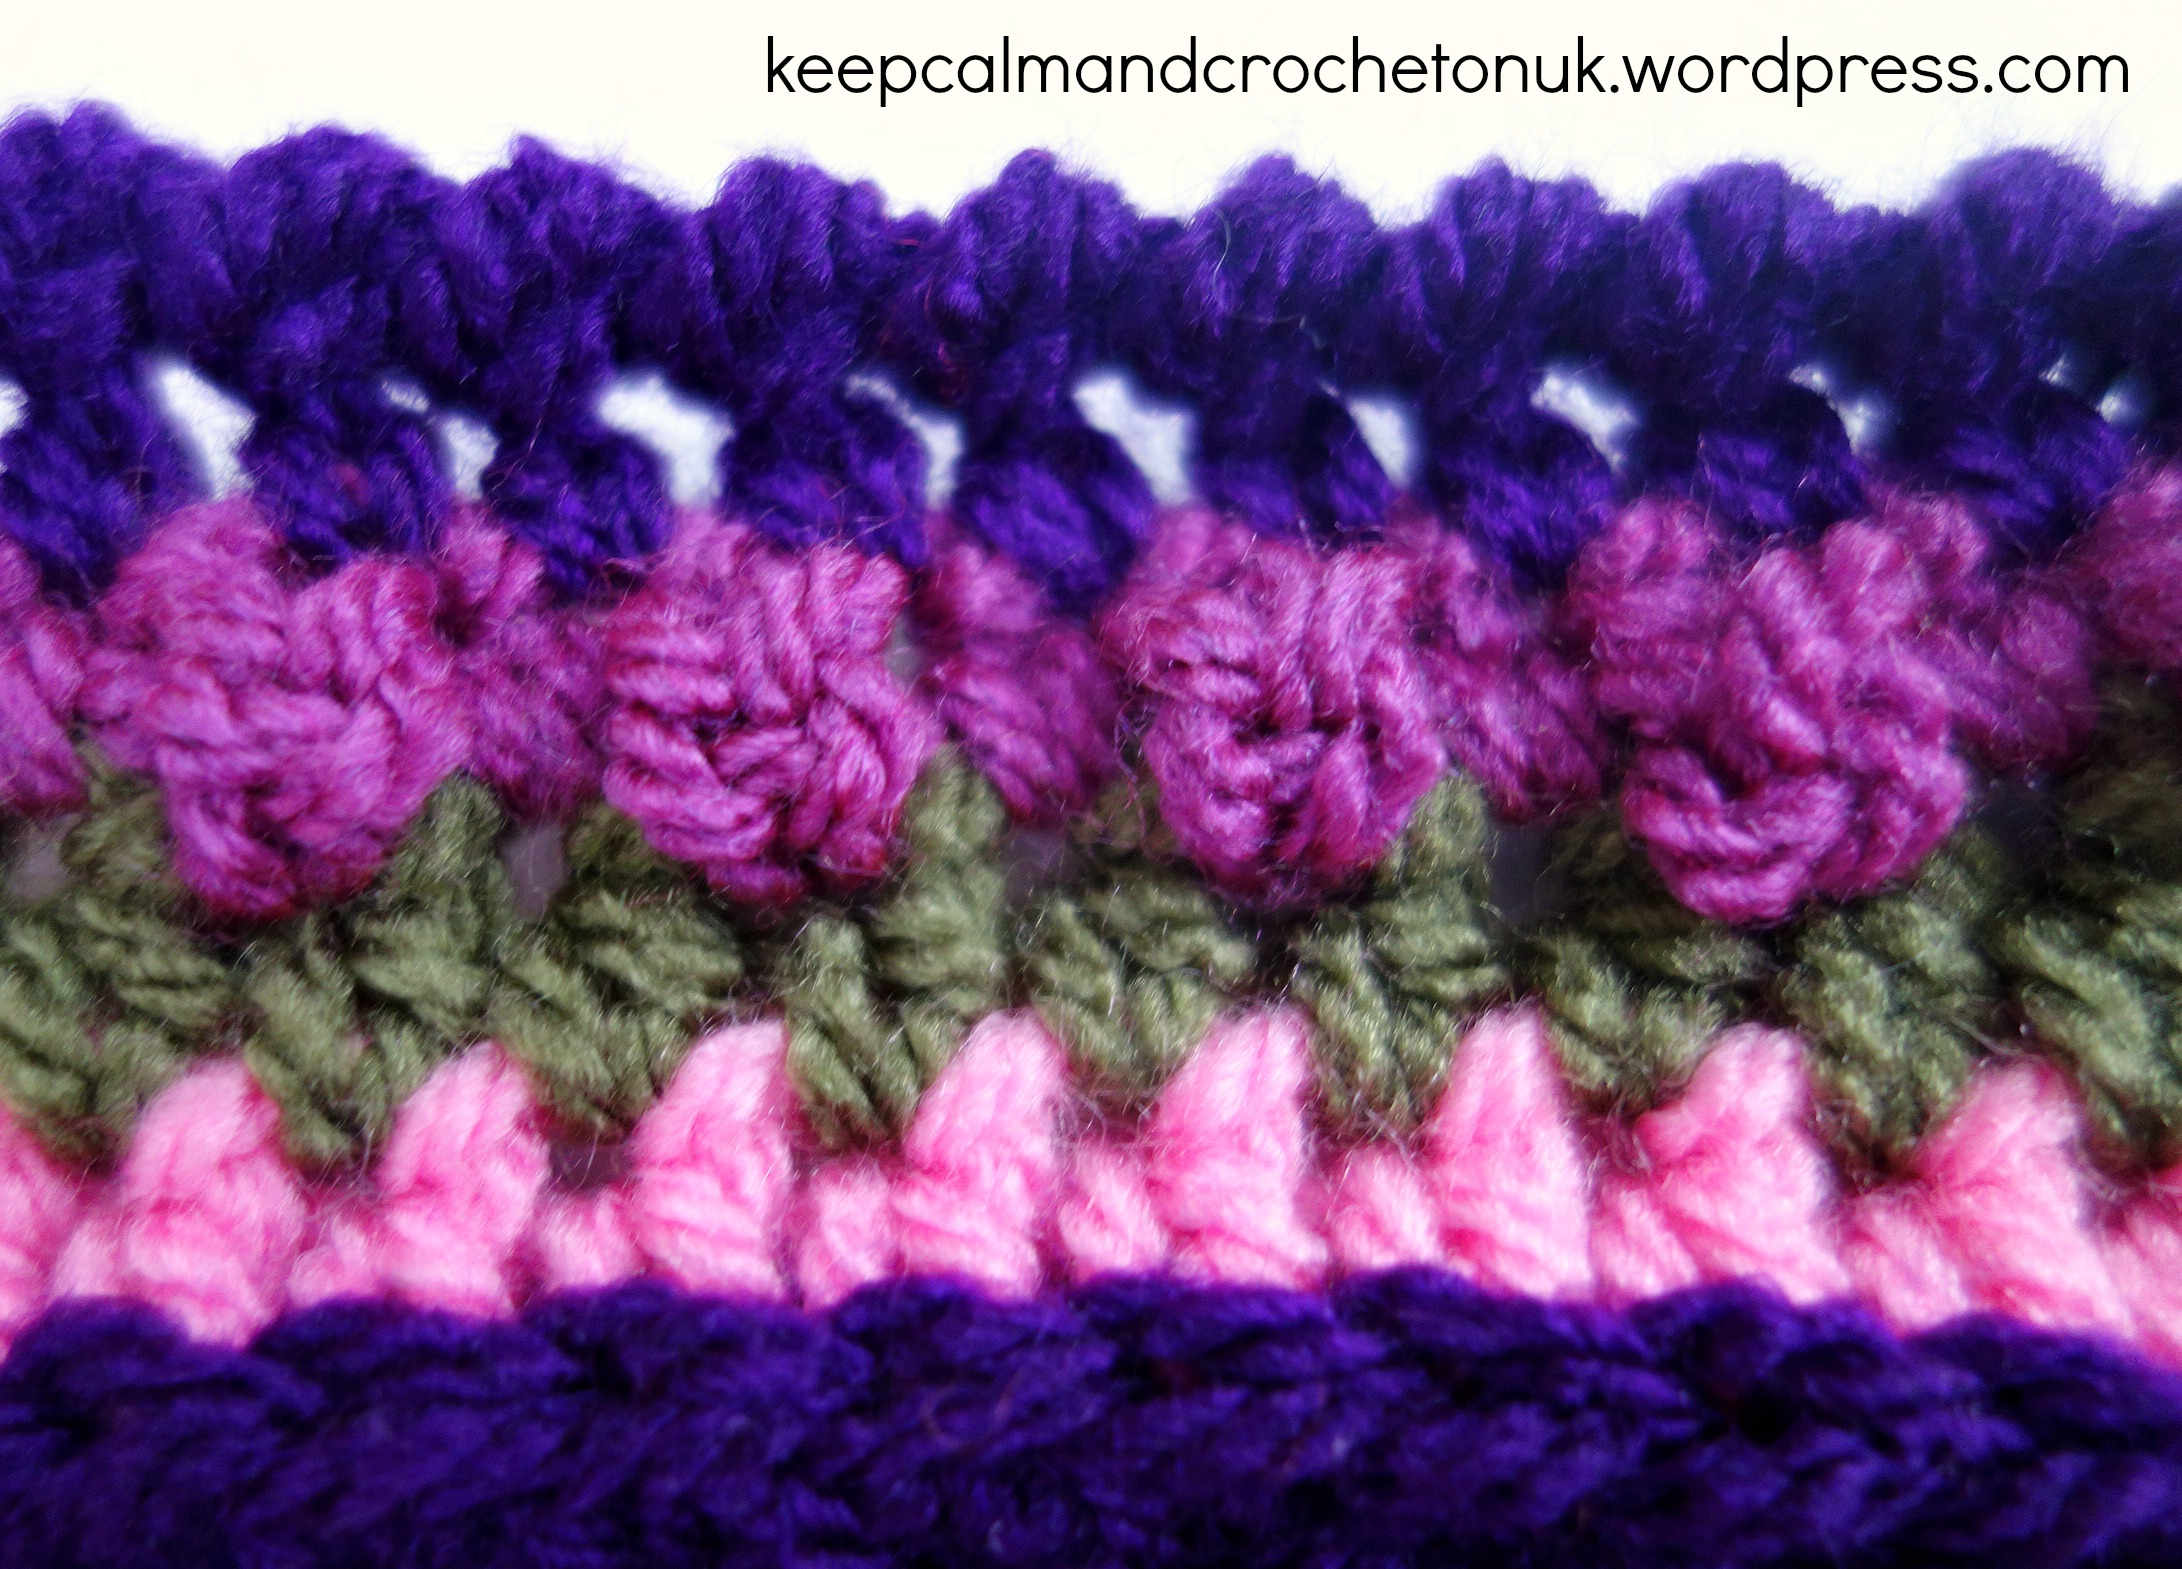 Crochet Edging | Keep Calm and Crochet On U.K